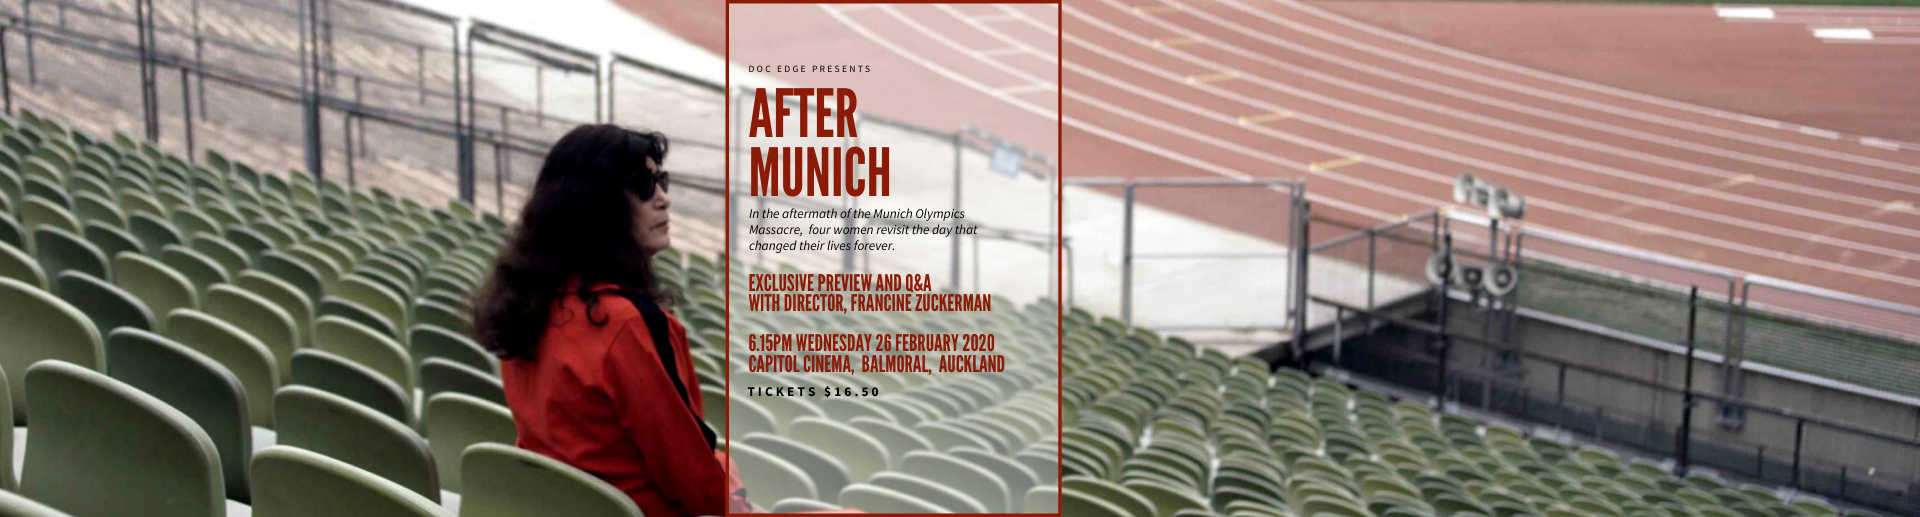 After Munich Exclusive Preview 26 Feb 2020